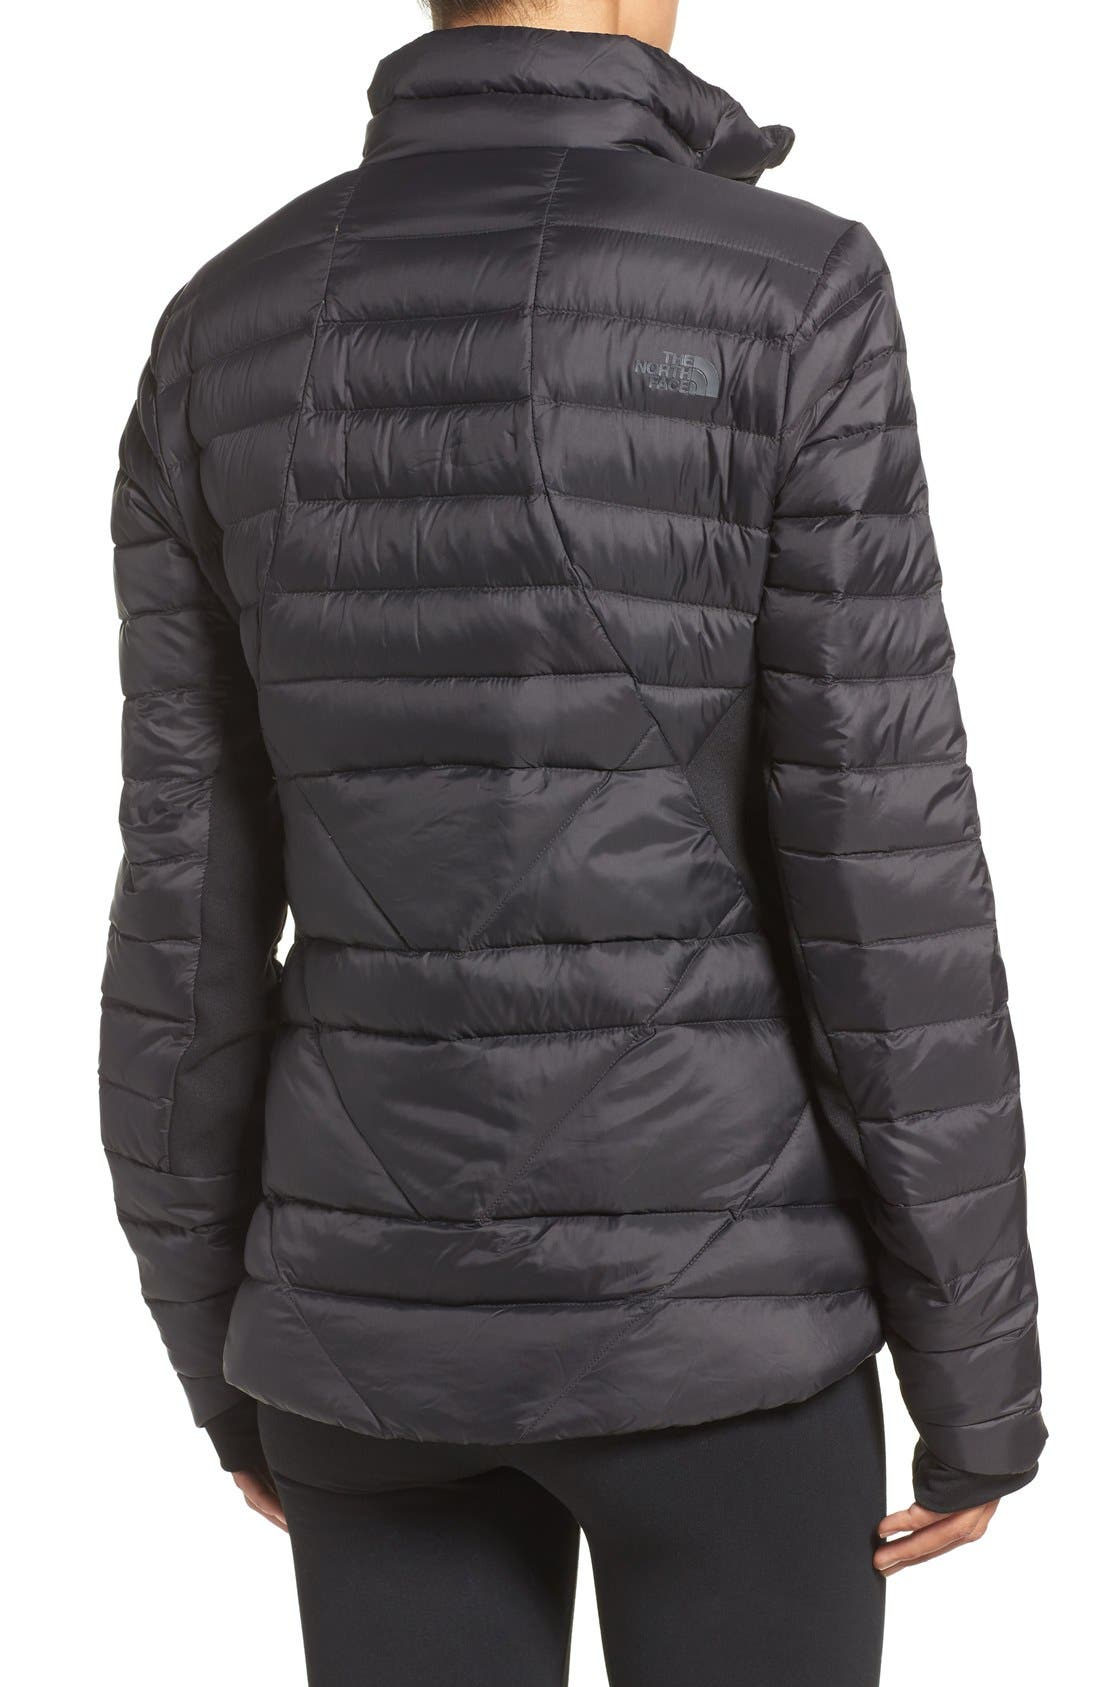 THE NORTH FACE,                             Lucia Hybrid Down Jacket,                             Alternate thumbnail 2, color,                             001